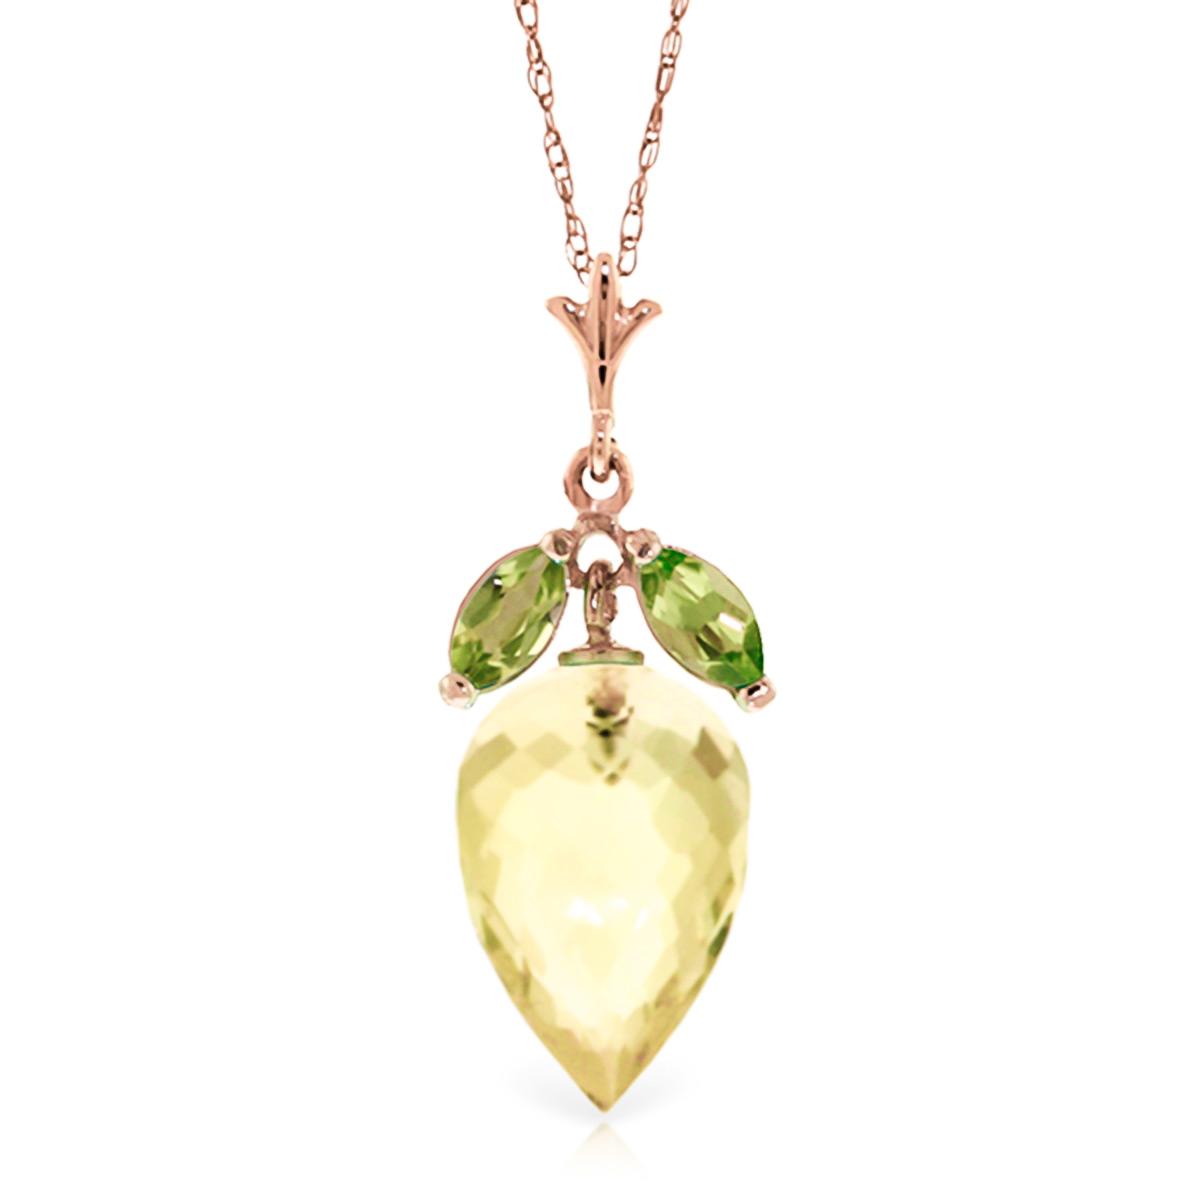 Bargain Lemon Quartz and Peridot Pendant Necklace 9.5ctw in 9ct Rose Gold Stockists